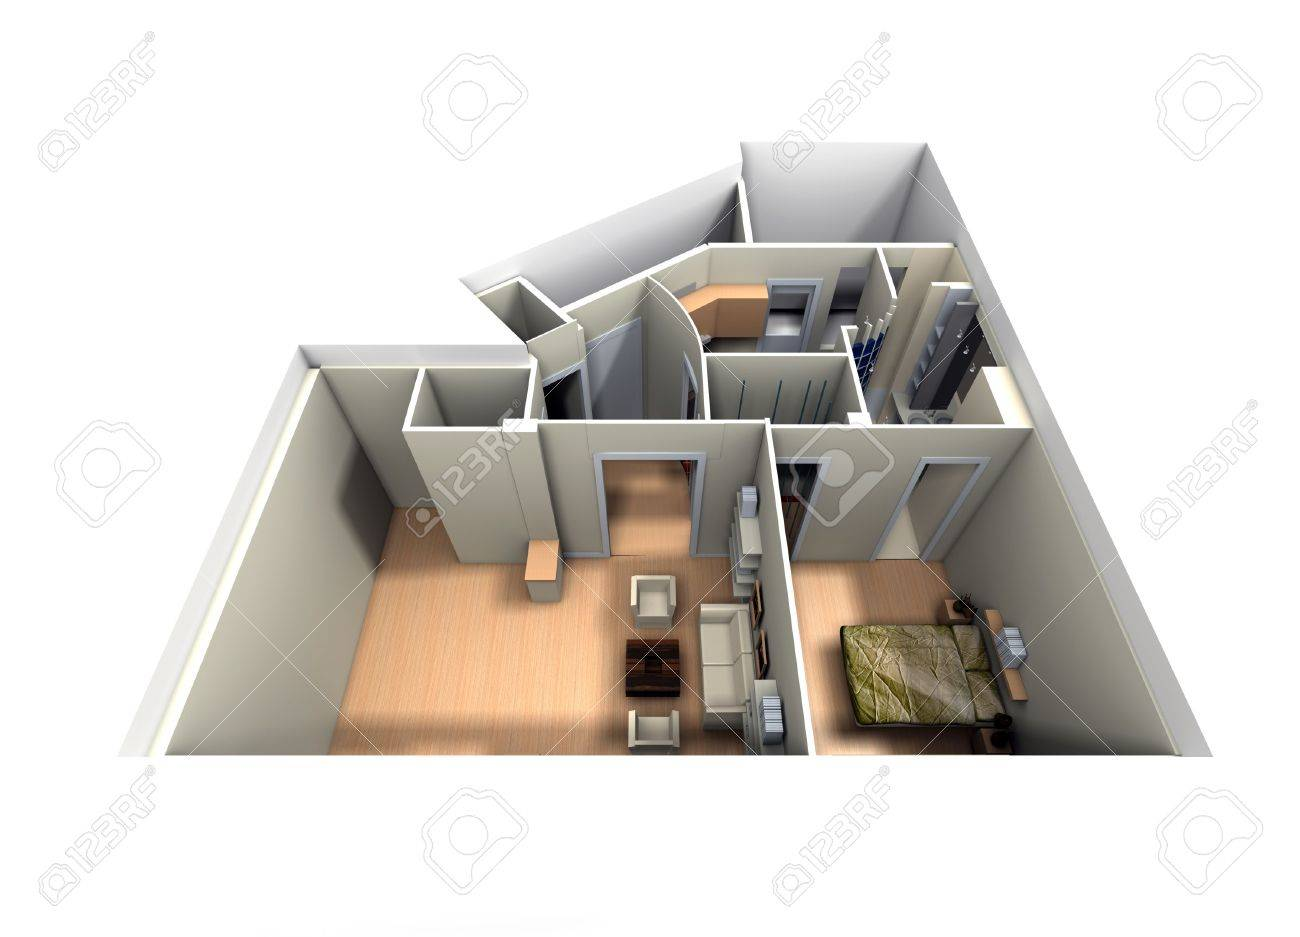 Aerial View Of Roofless Apartment Focused On Living Room And Stock